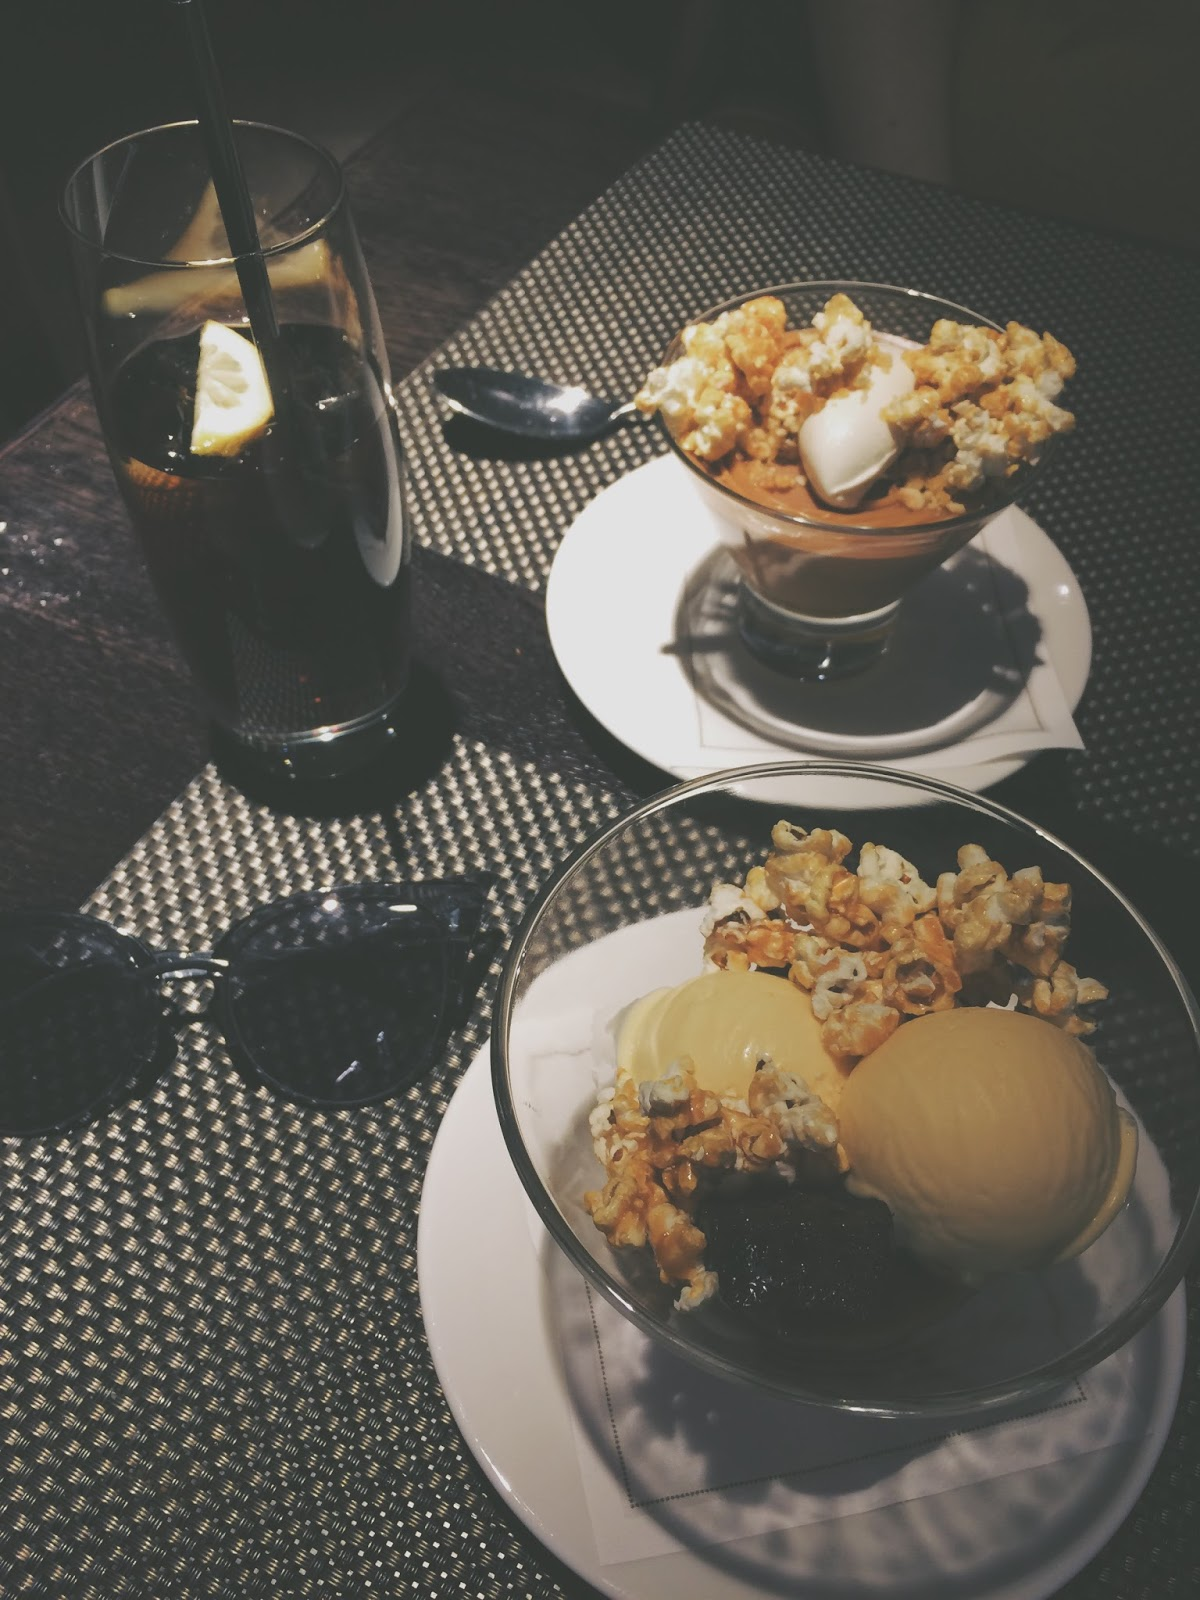 dessert, glasgow food, pudding, where to eat in glasgow, dakota deluxe restaurant, glasgow restaurant, glasgow food reviewer, fine dining in glasgow, glasgow luxury,